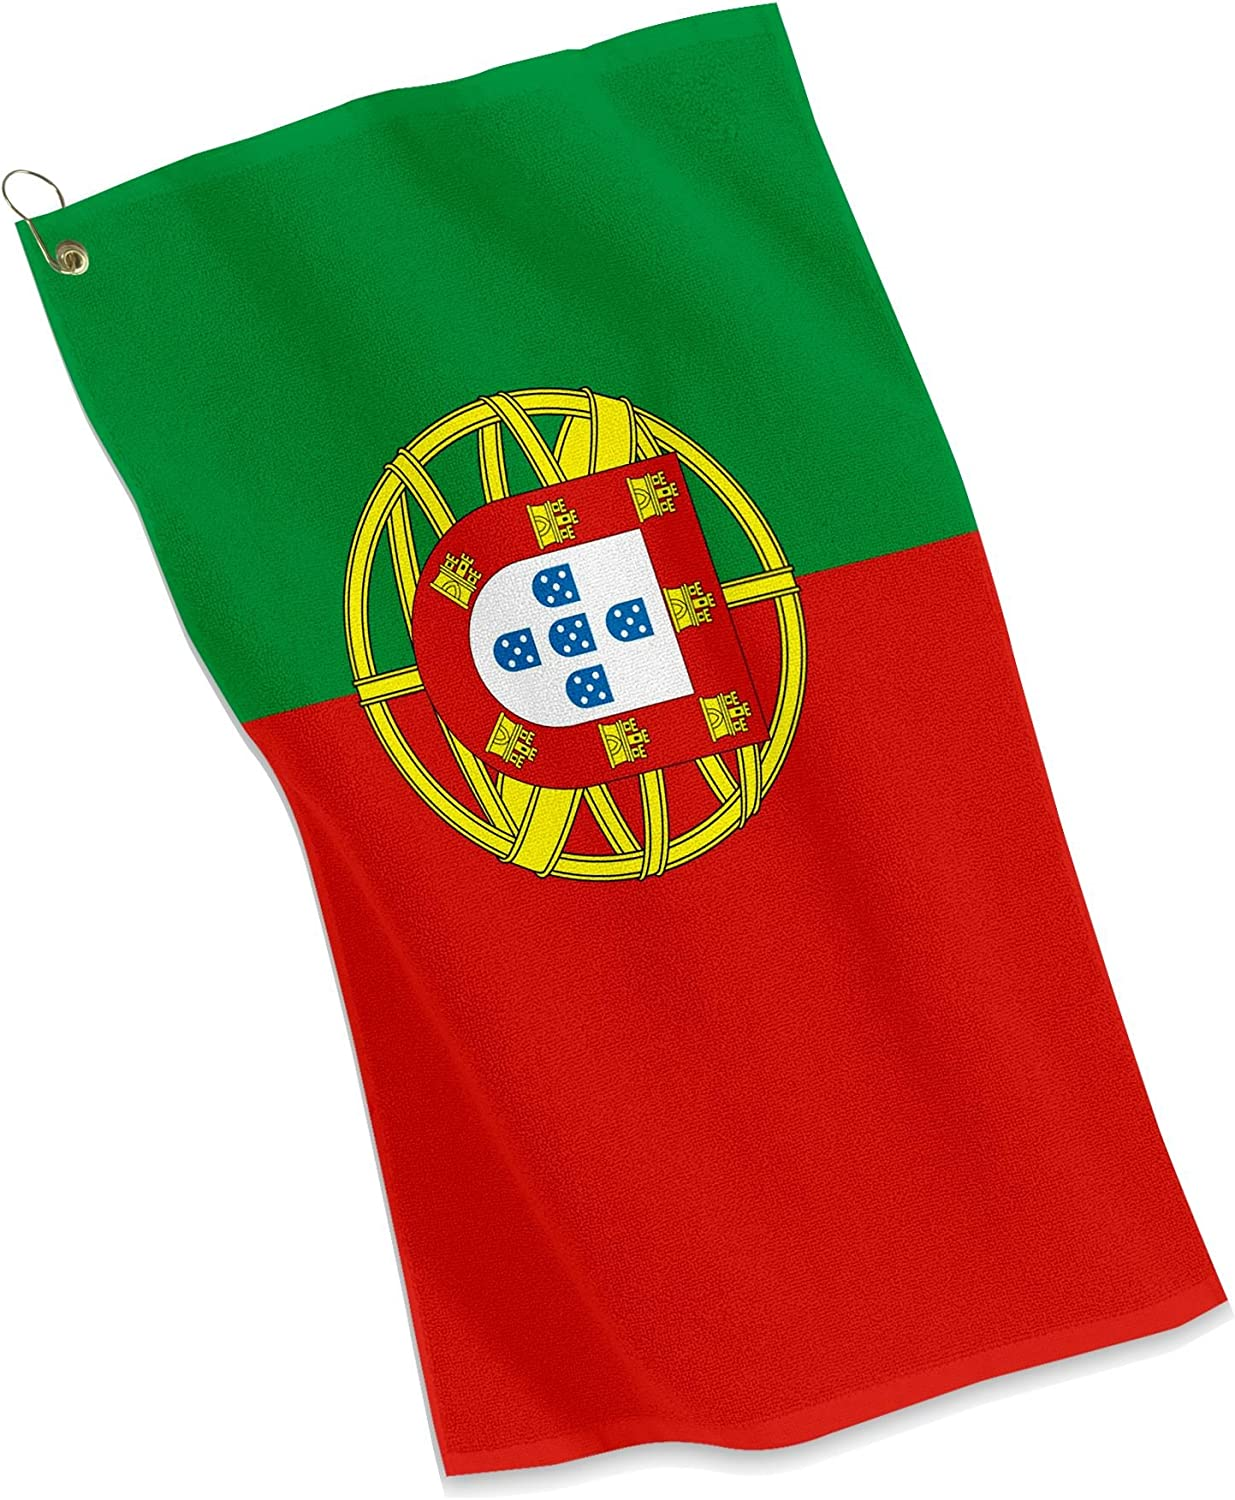 Amazon.com : ExpressItBest Golf/Sports Towel - Flag of Portugal - Portuguese  : Sports & Outdoors